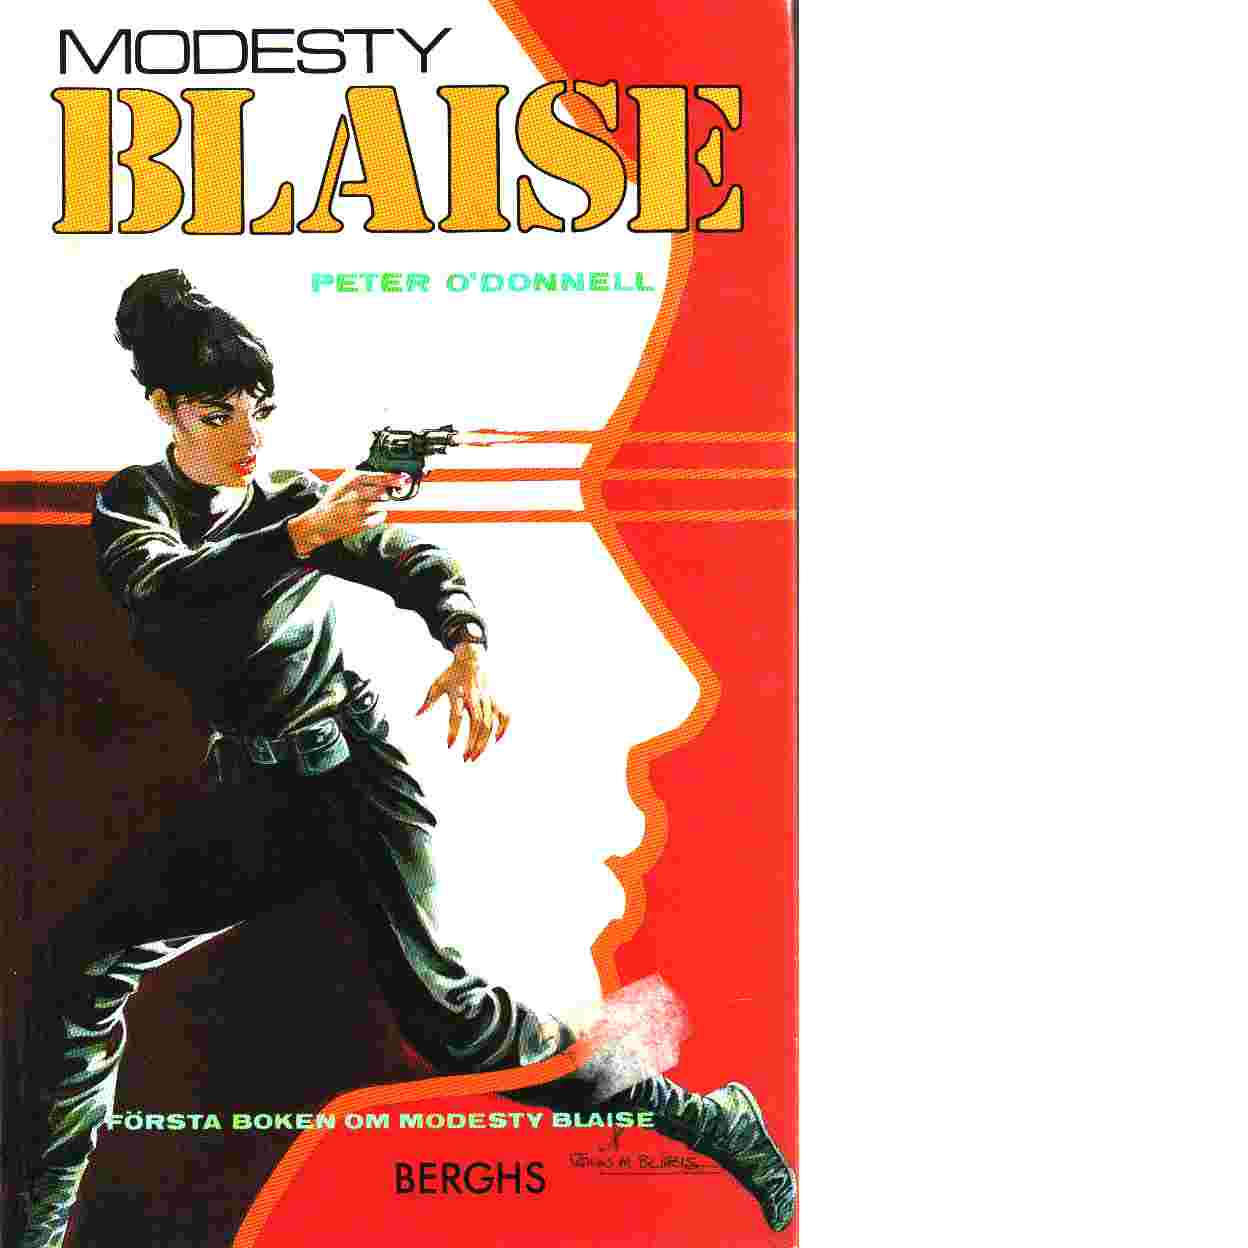 Modesty Blaise - O'donnell Peter